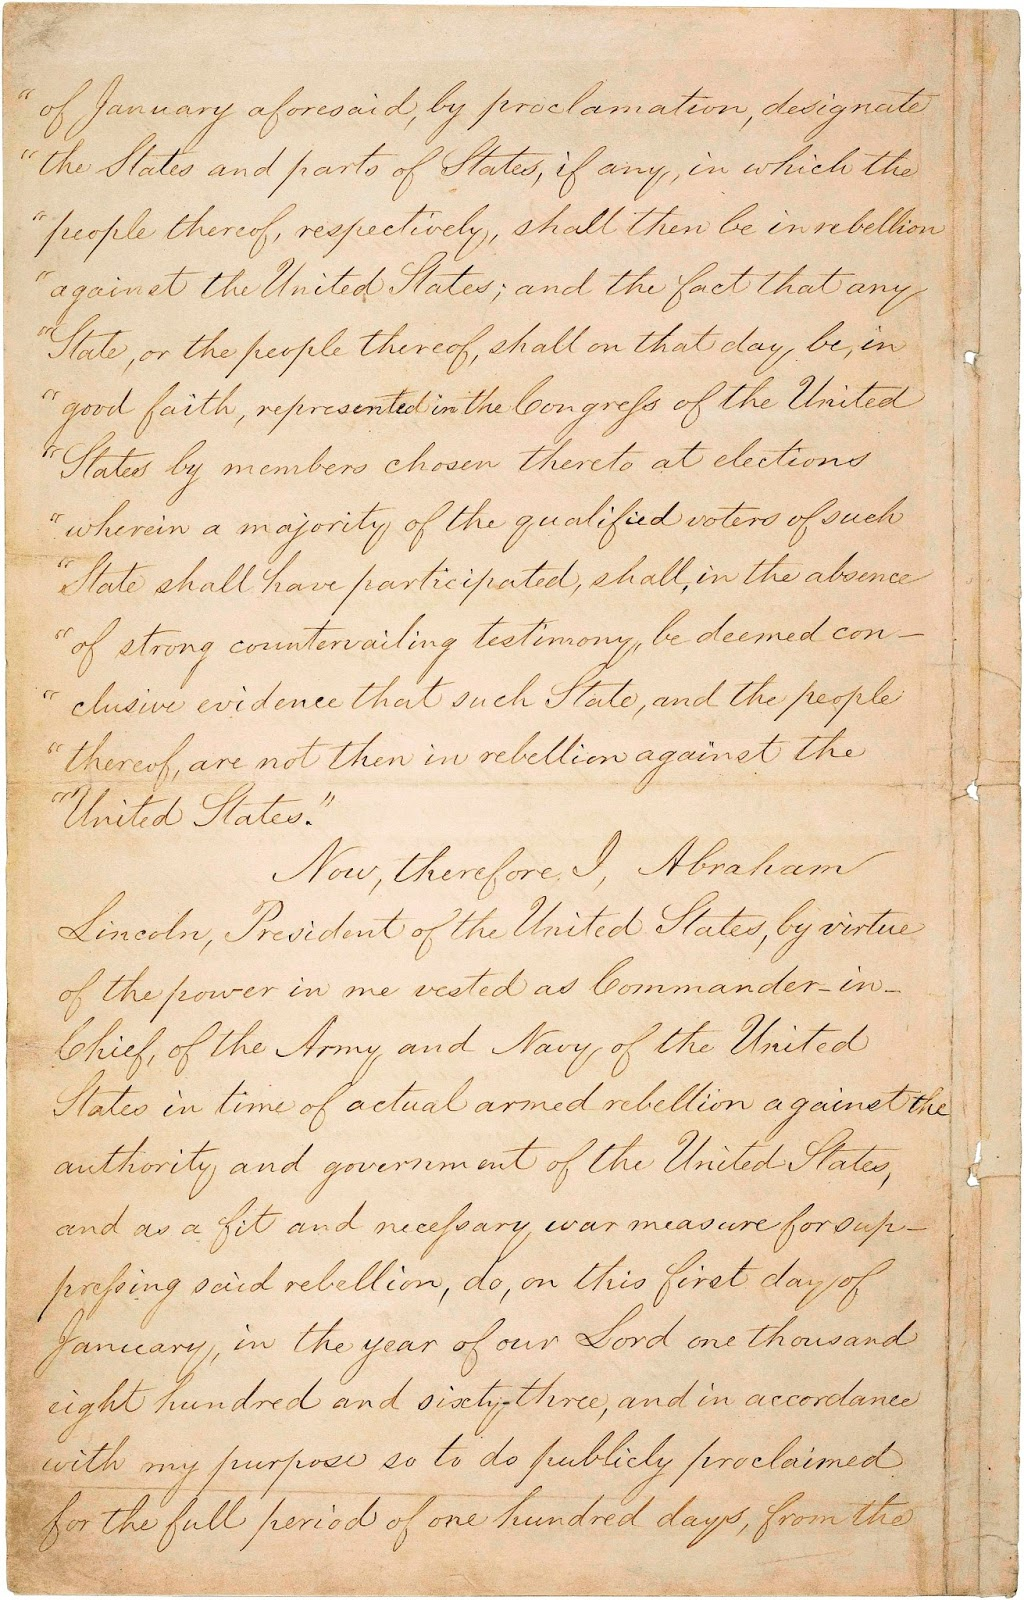 Date of emancipation proclamation in Australia